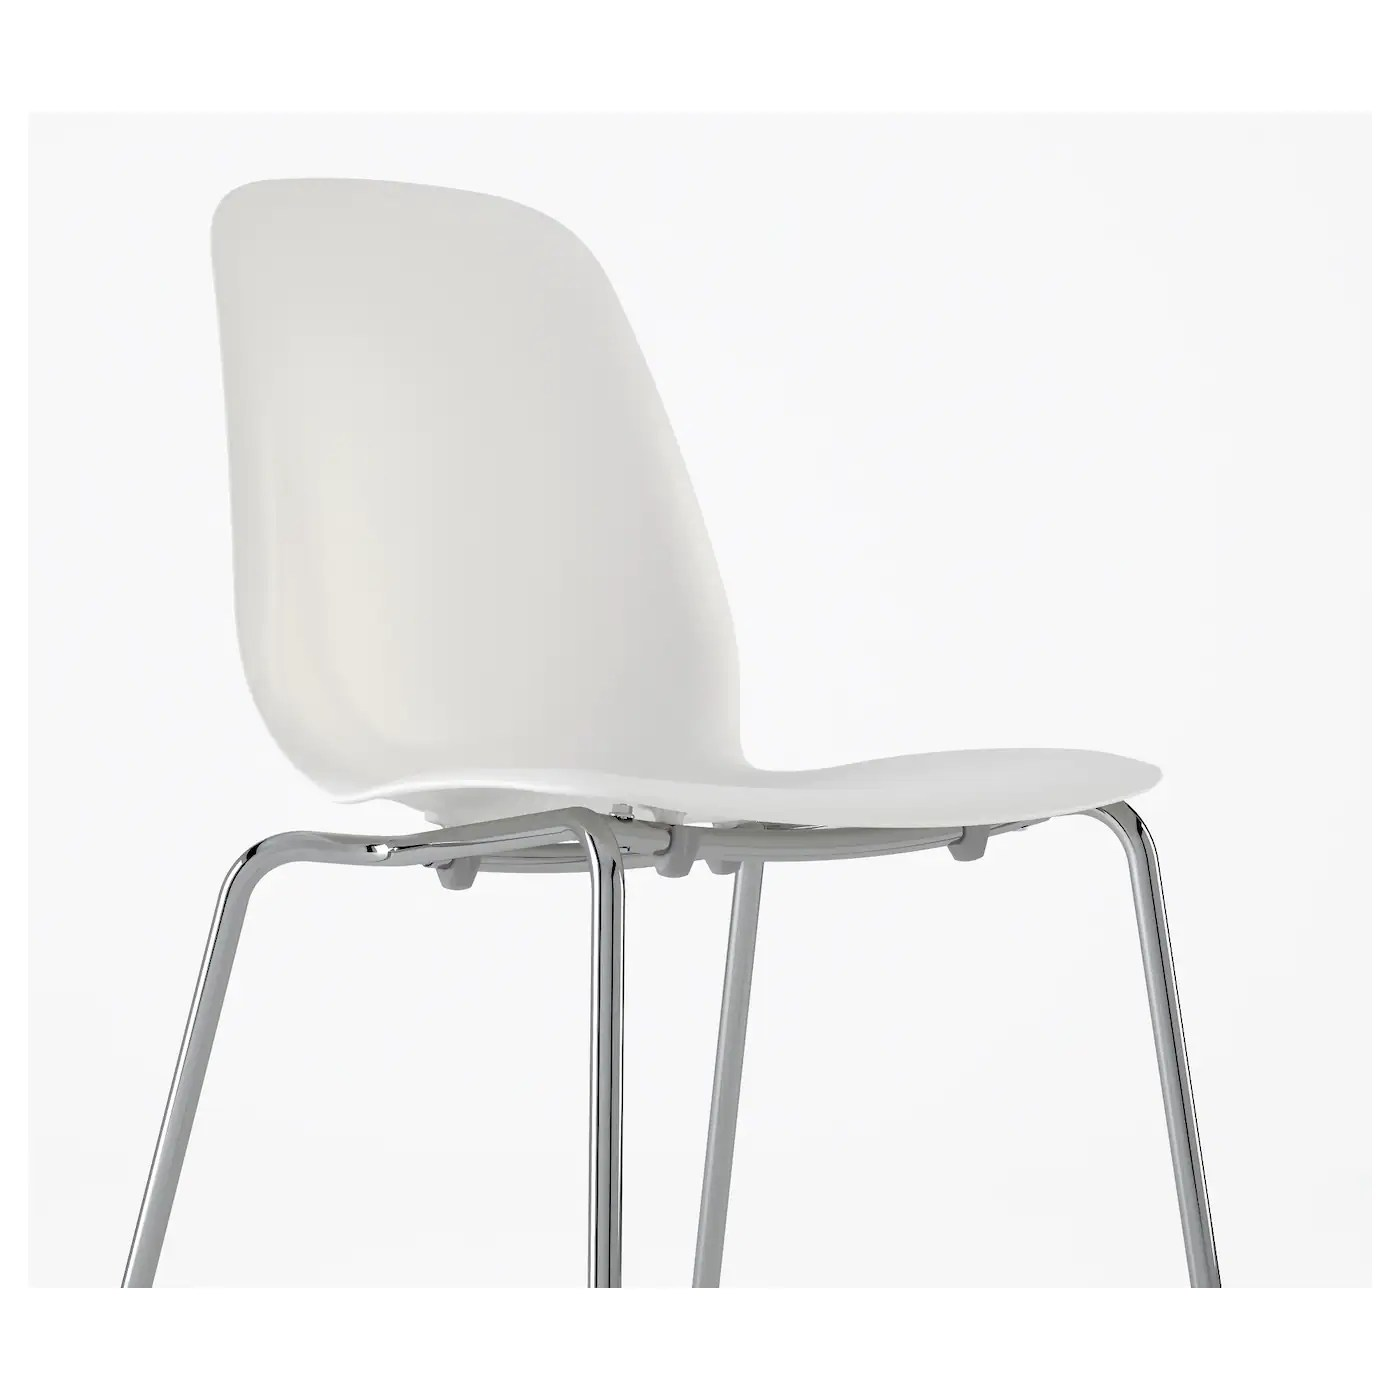 White Chair Ikea Leifarne Chair White Broringe Chrome Plated Ikea